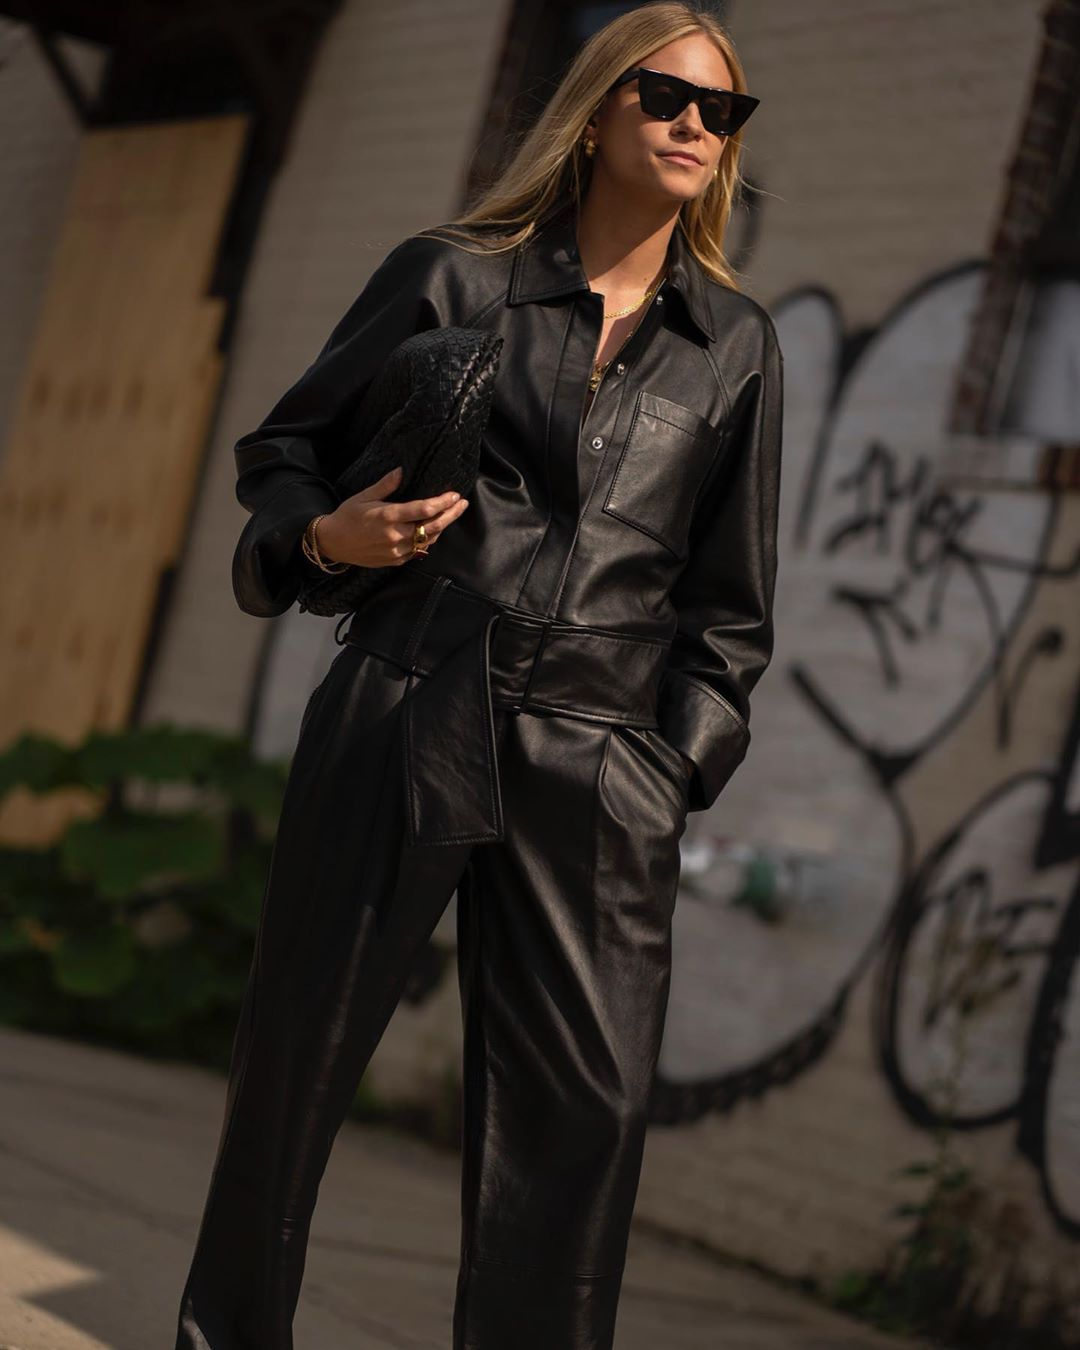 tine-andrea-black-leather-jumpsuit-outfit